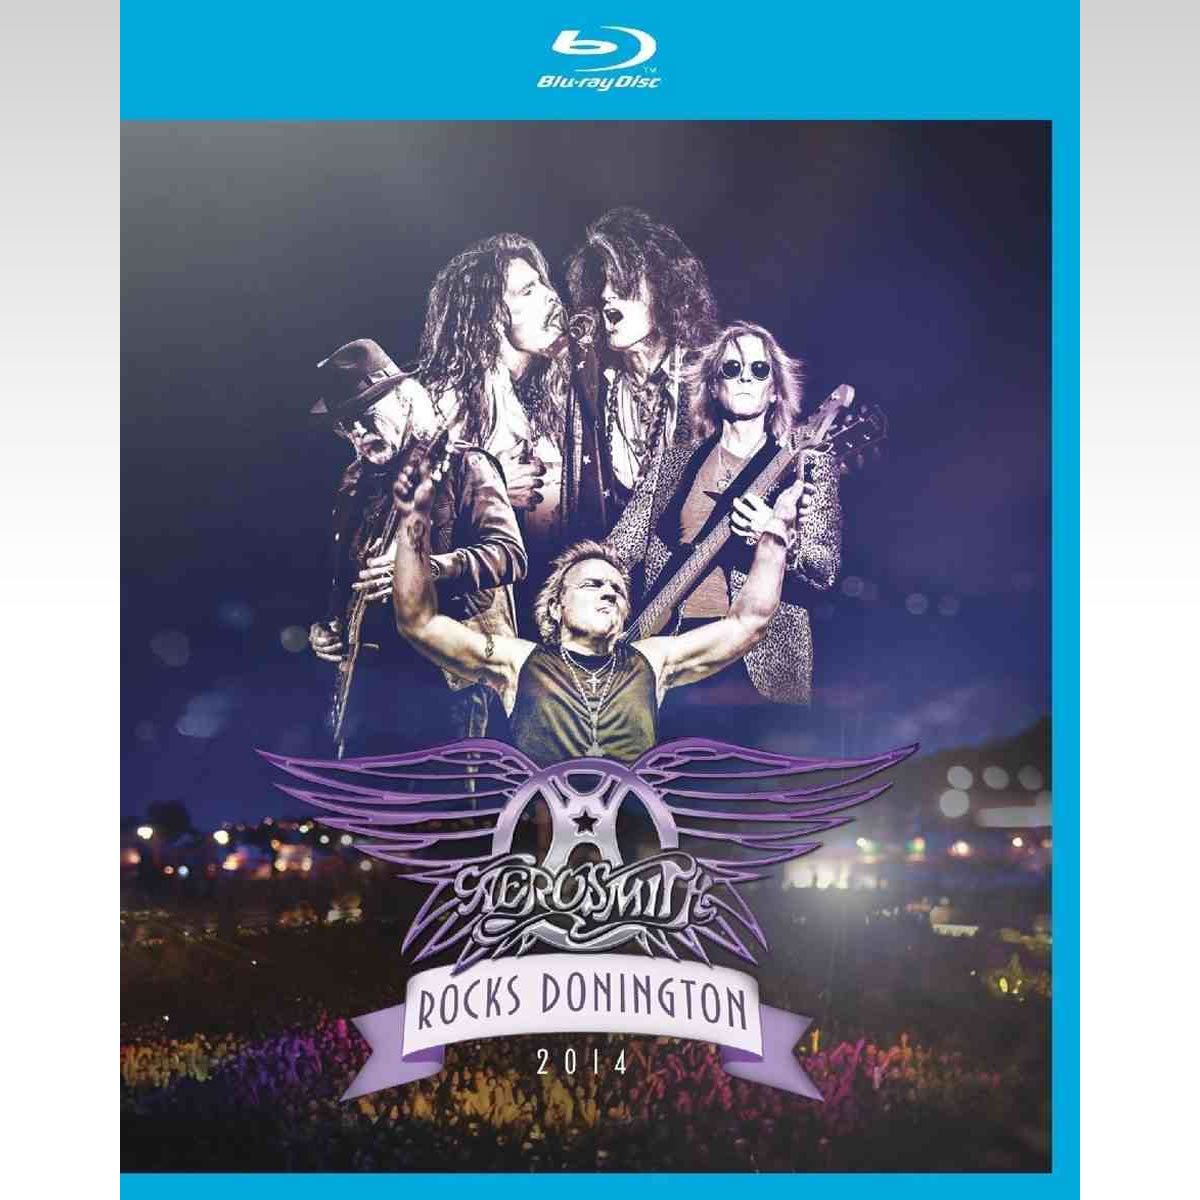 AEROSMITH: ROCKS DONINGTON (BLU-RAY)